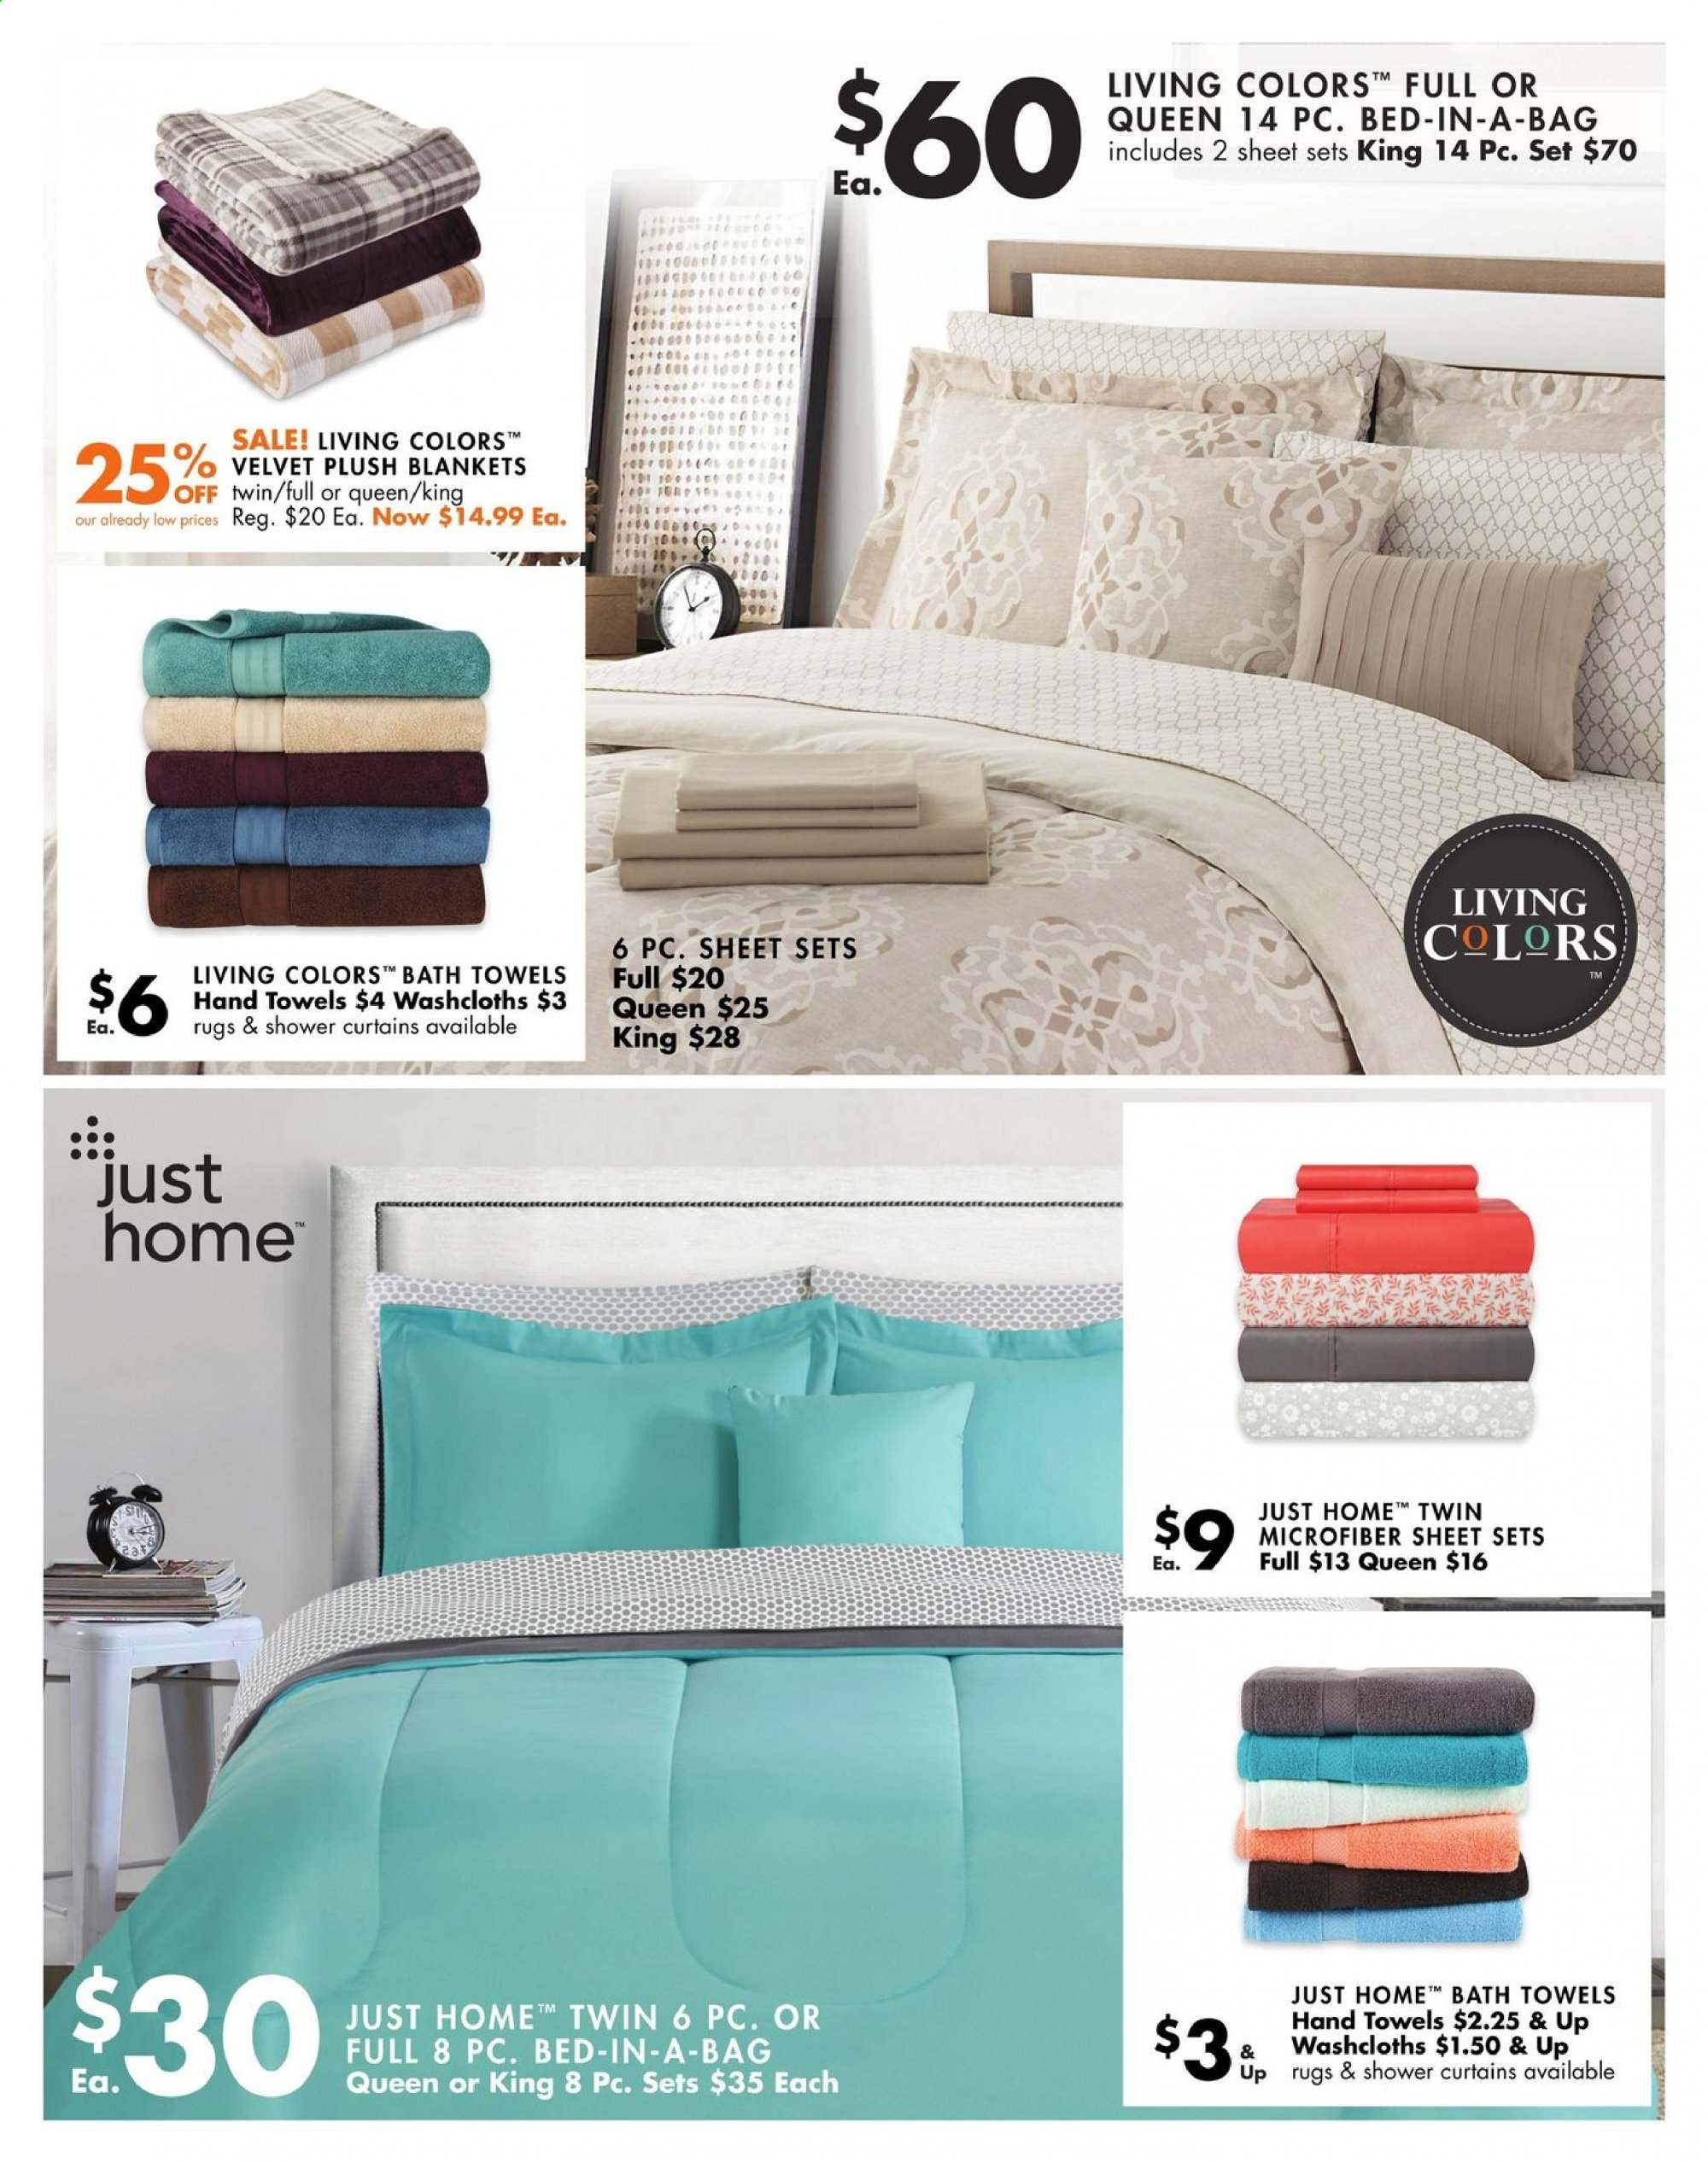 Big Lots flyer 8.8.8 - 8.8.8 - page 8  Weekly Ads